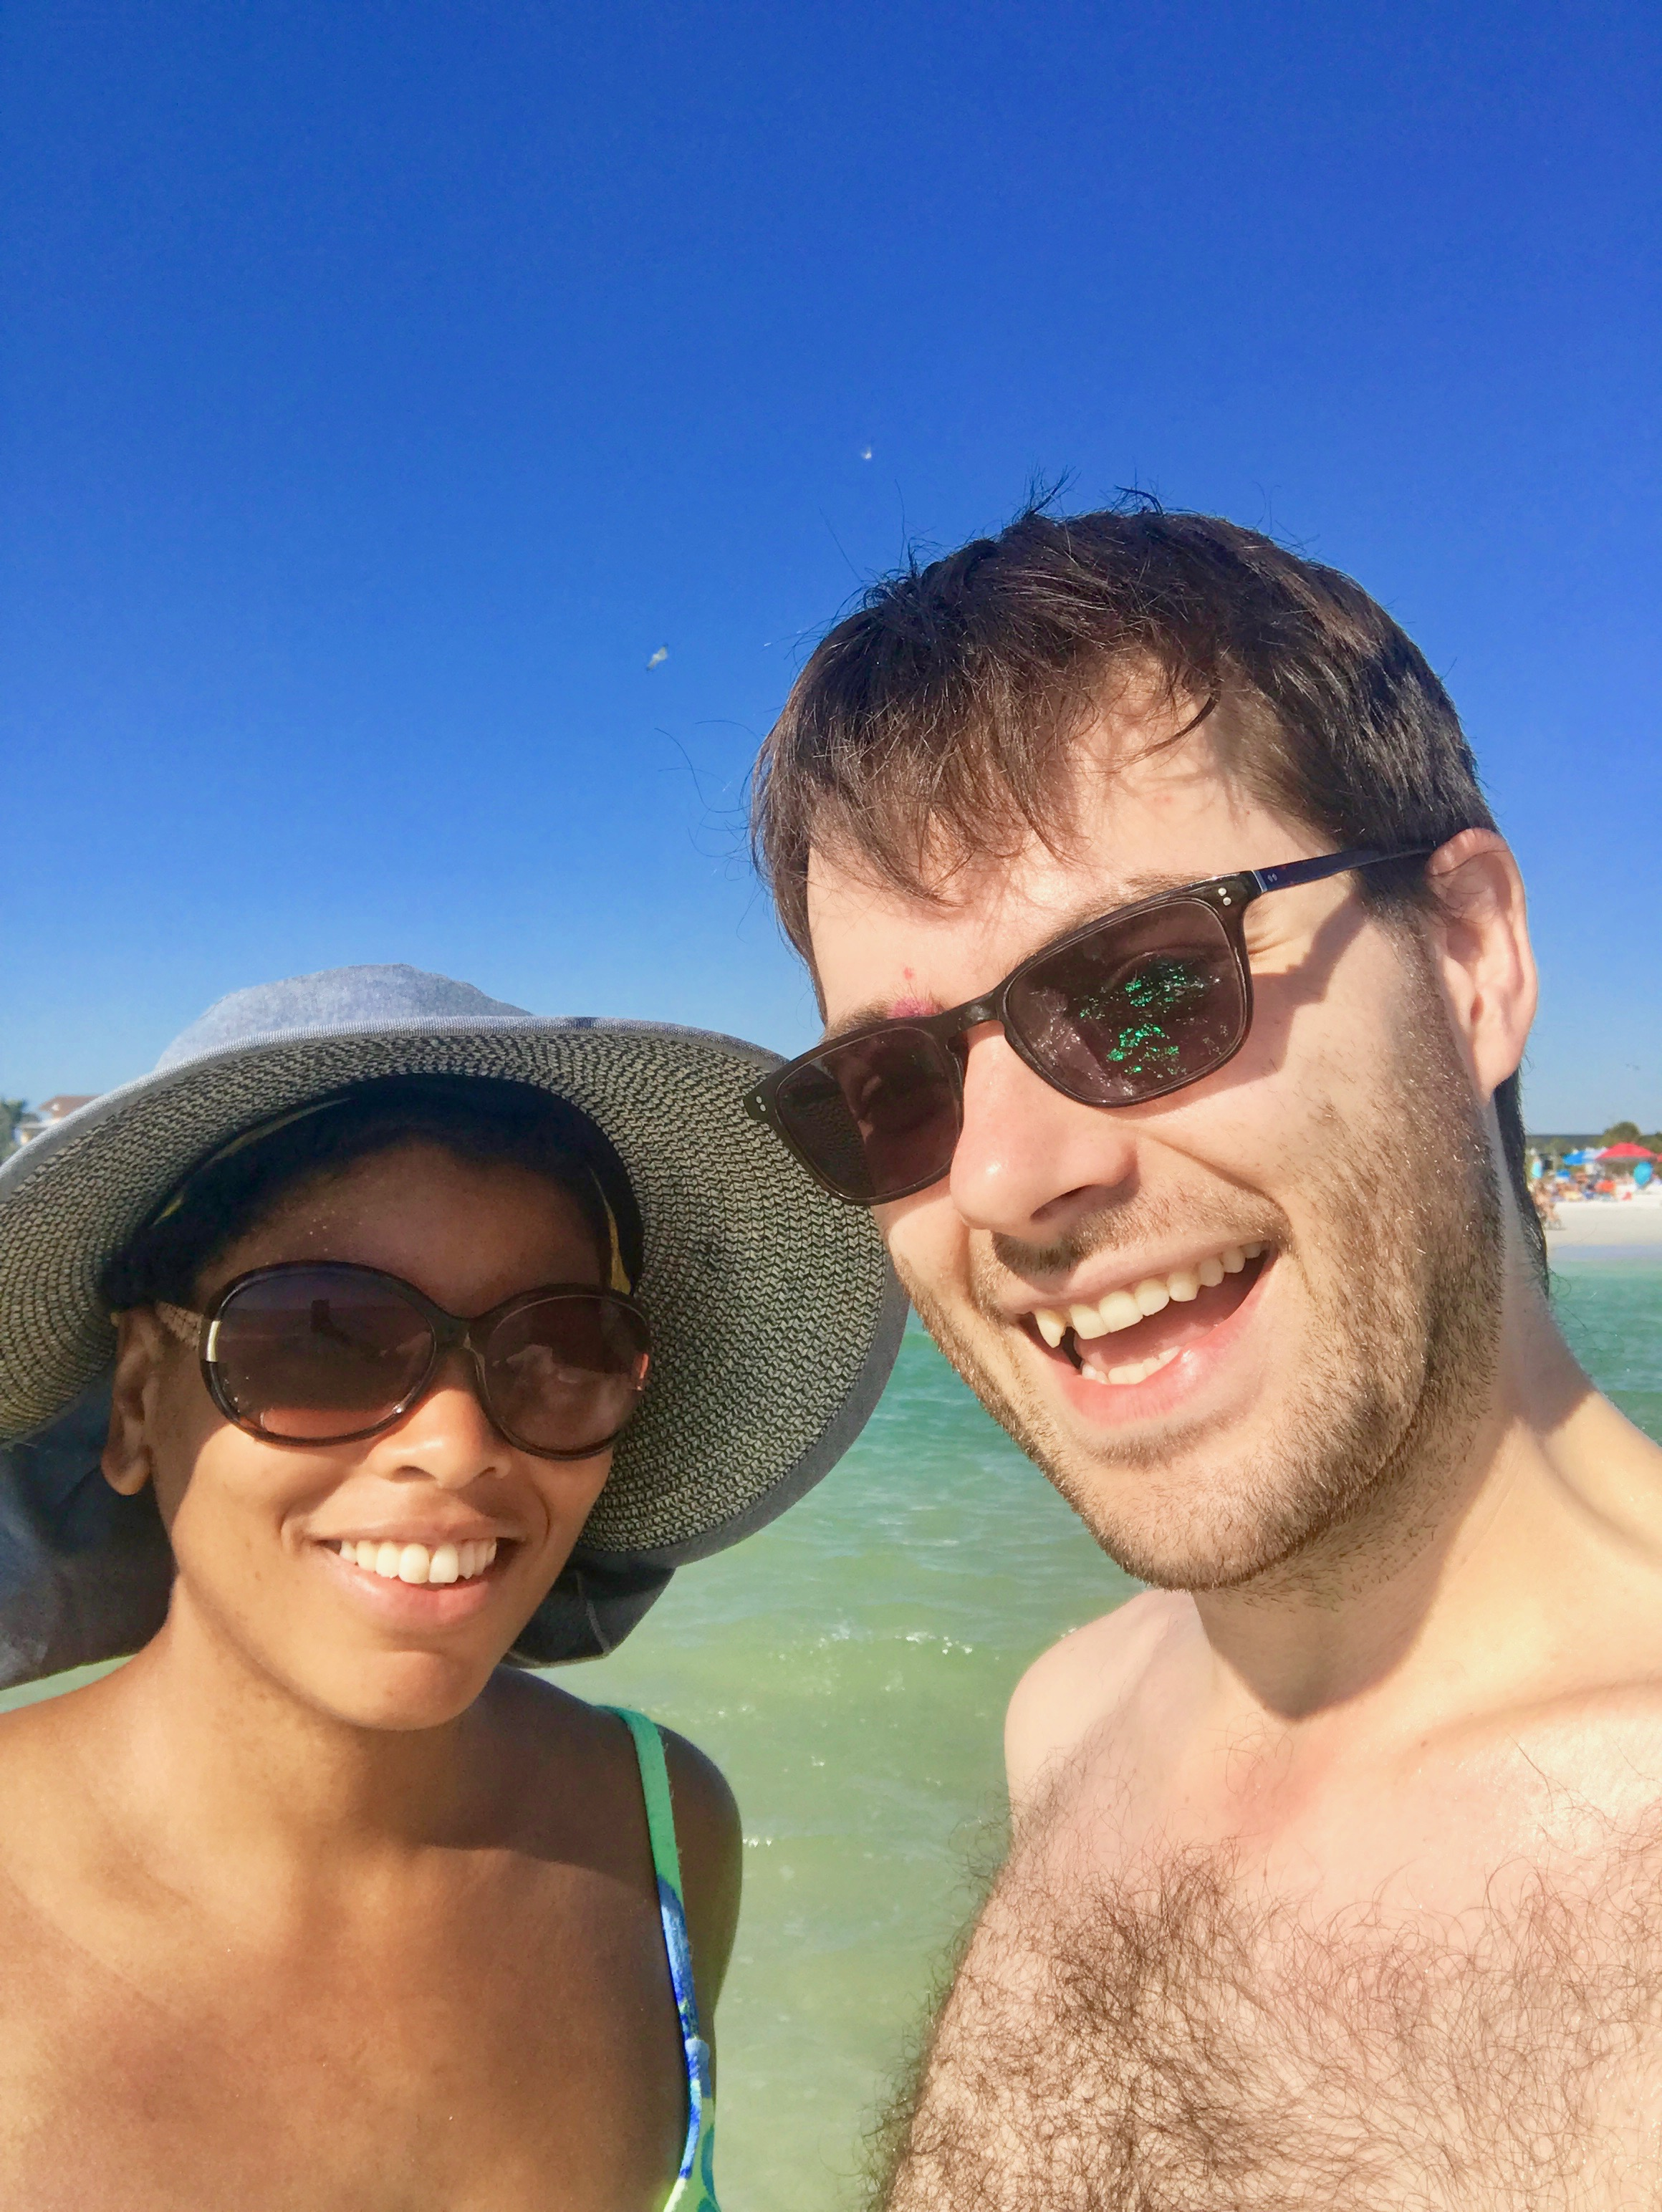 I don't often do selfies, but when I do, they're with Regina. A beautiful beach backdrop is a plus.